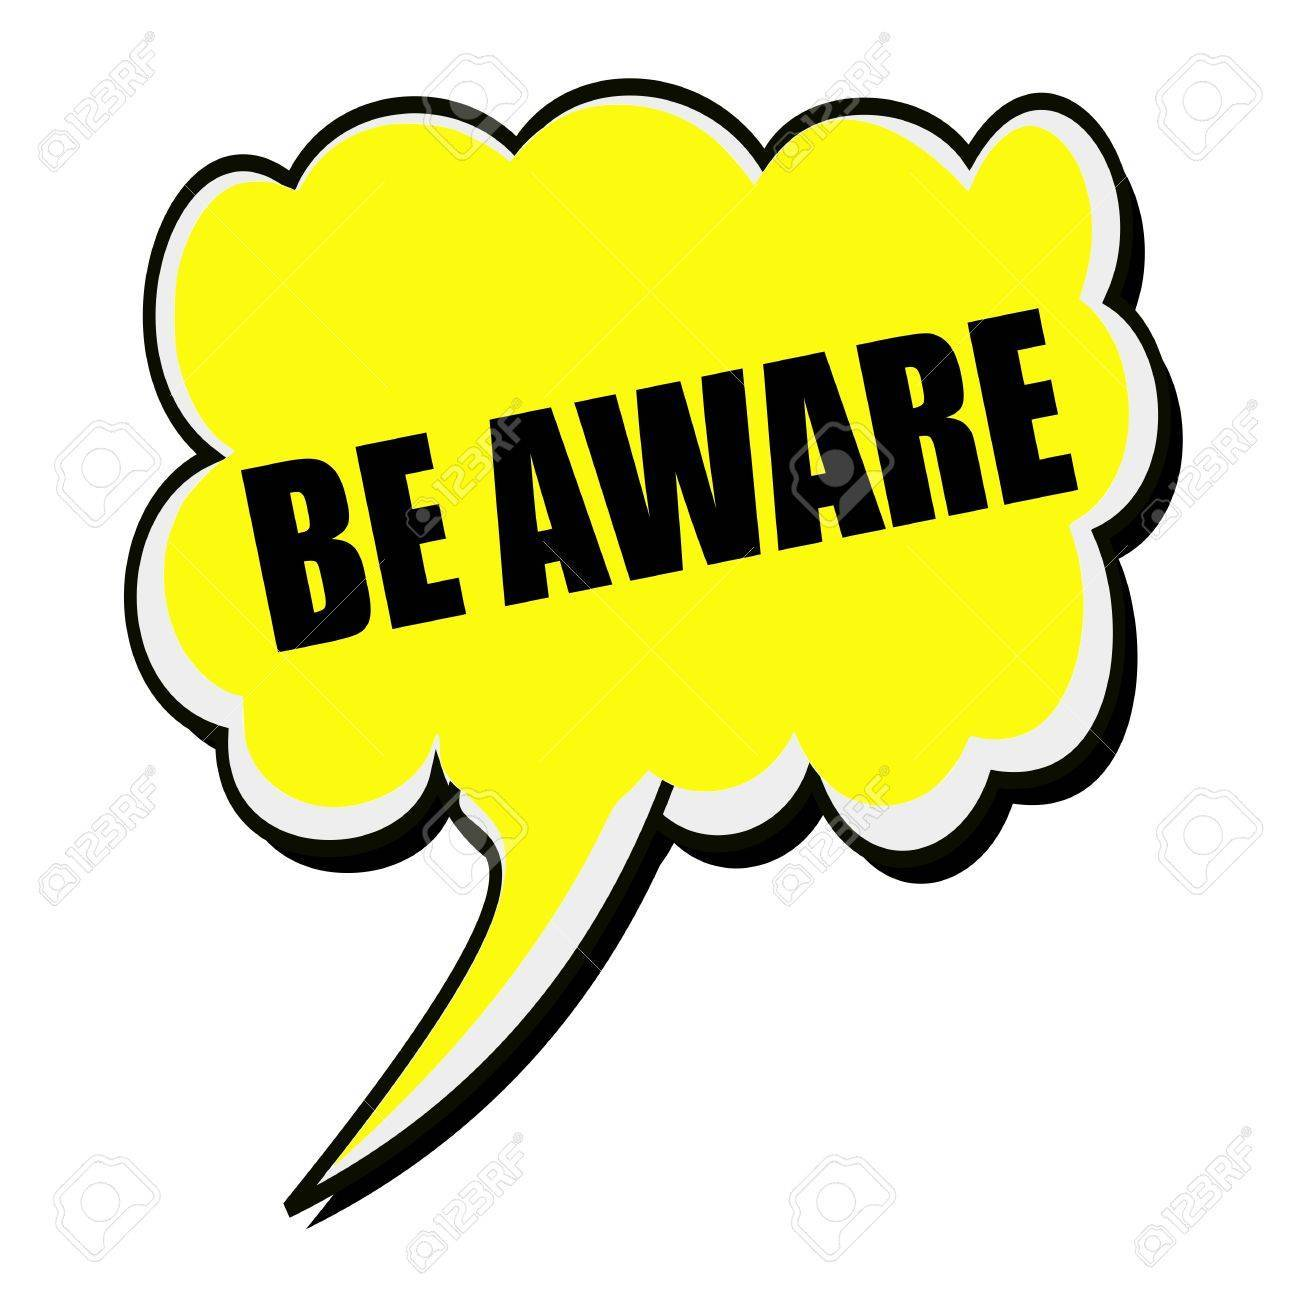 Be aware clipart clip art transparent stock Be aware black stamp text on yellow Speech Bubble » Clipart Portal clip art transparent stock